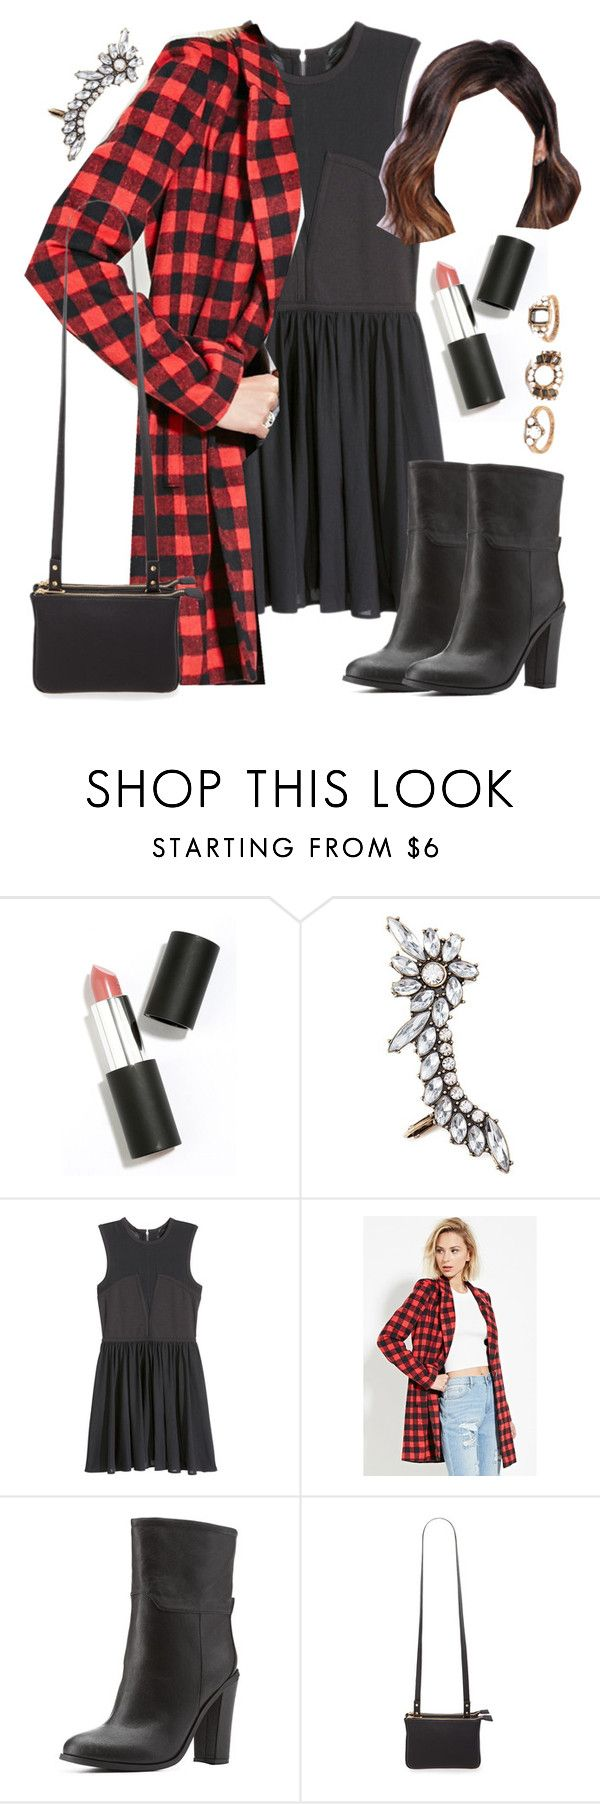 """""""Aria Montgomery inspired dinner party outfit"""" by liarsstyle ❤ liked on Polyvore featuring Sigma Beauty, Forever 21, H&M, Charlotte Russe, party, Dinner and WF"""